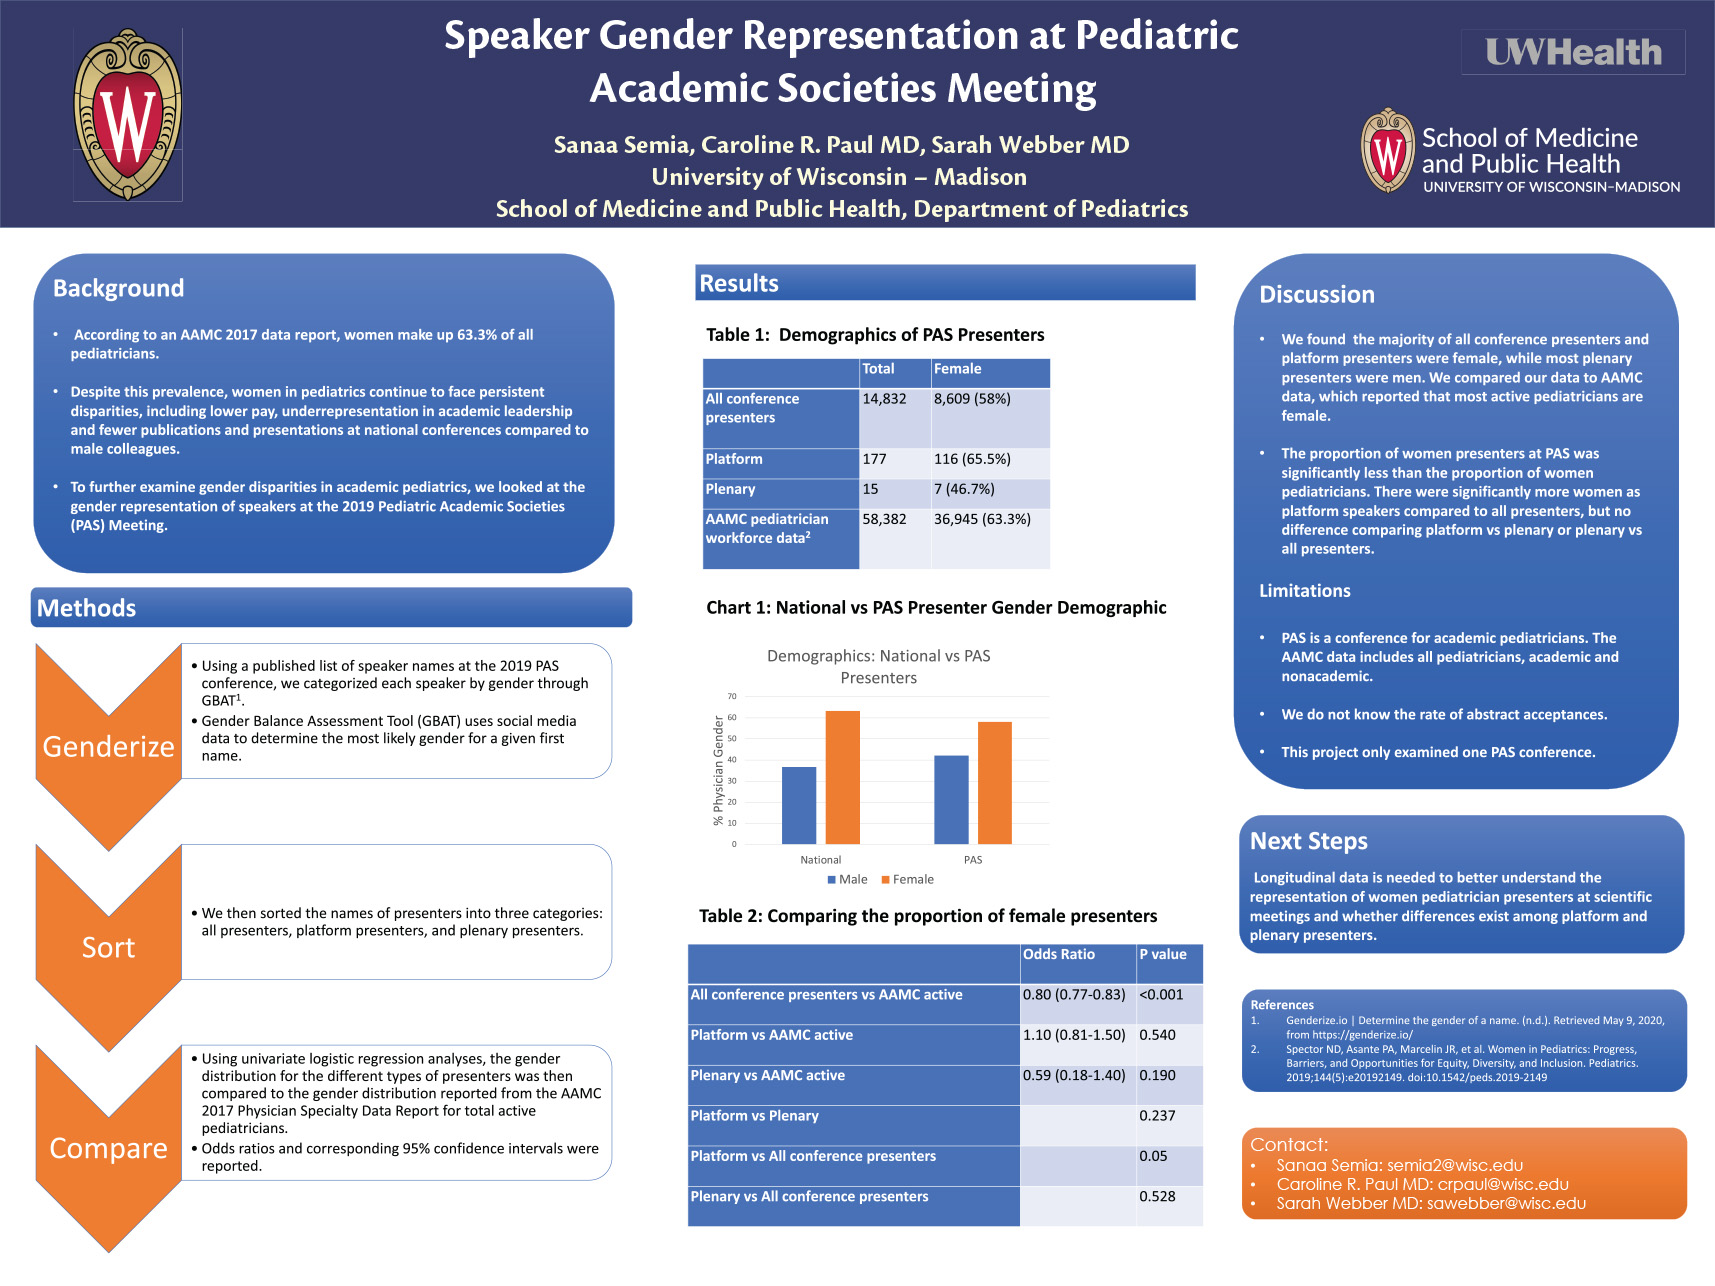 Speaker Gender Representation at Pediatric Academic Society Meeting poster image